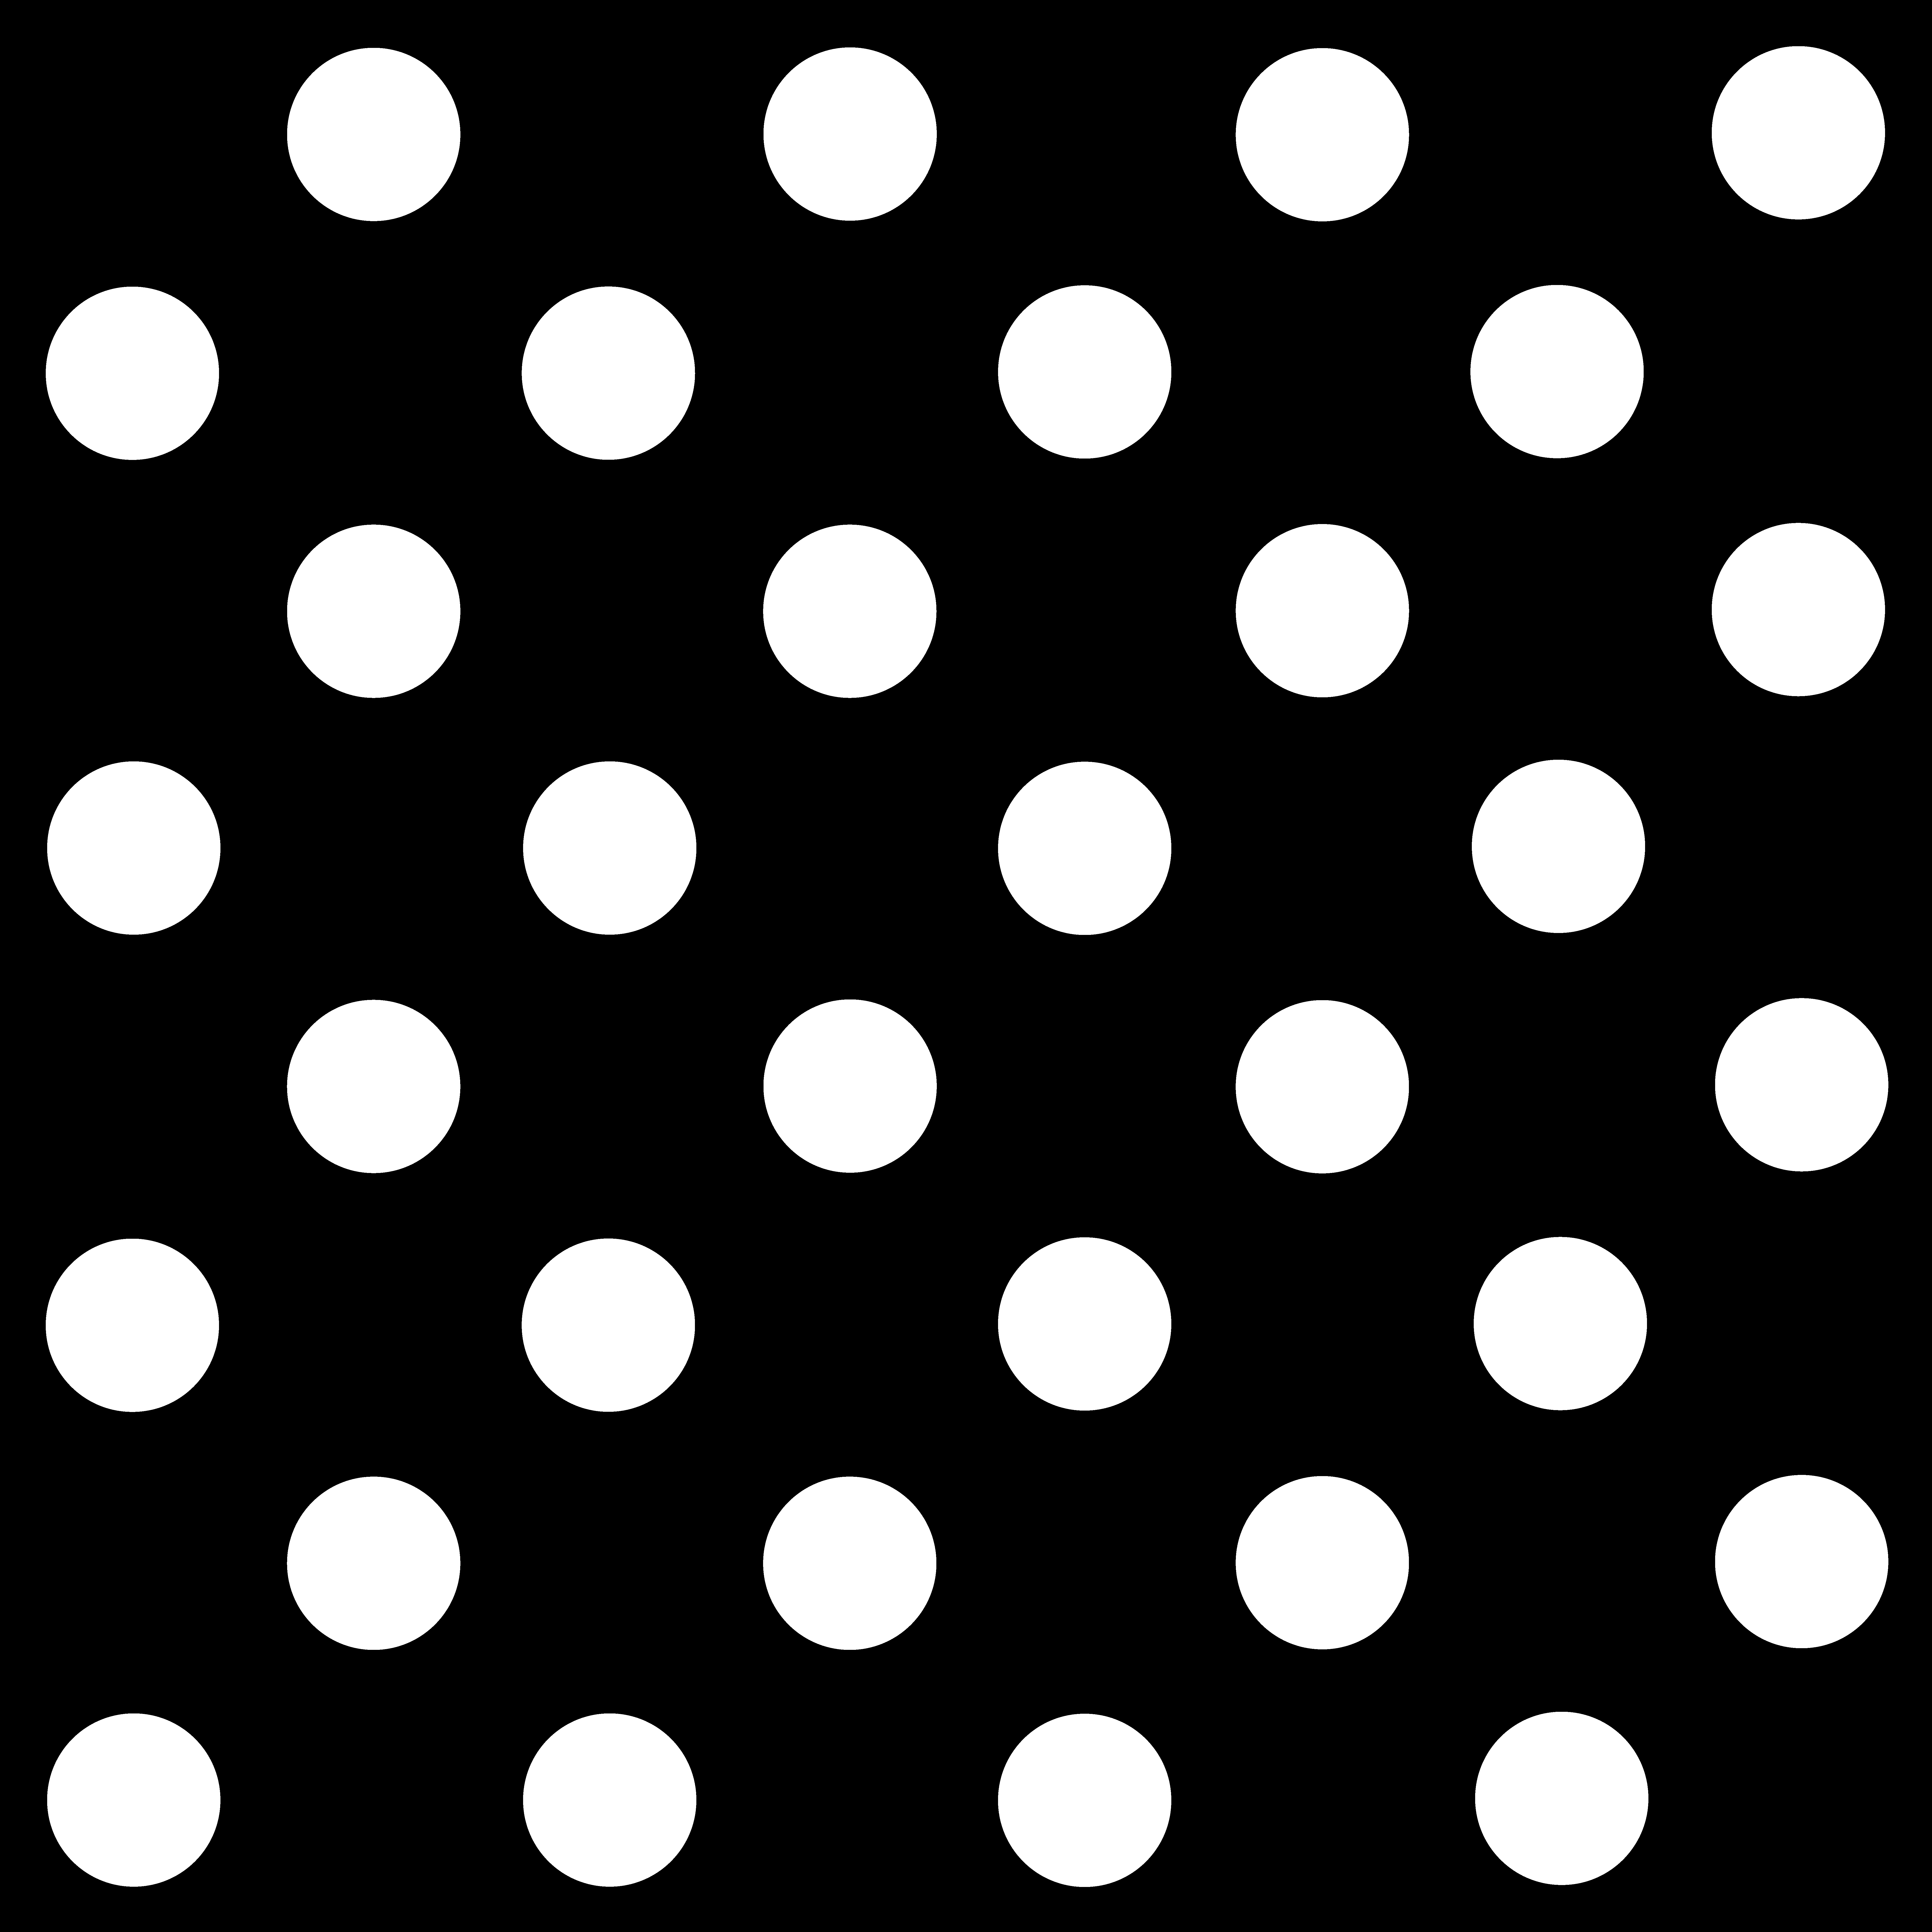 White Polka Dots on Black .